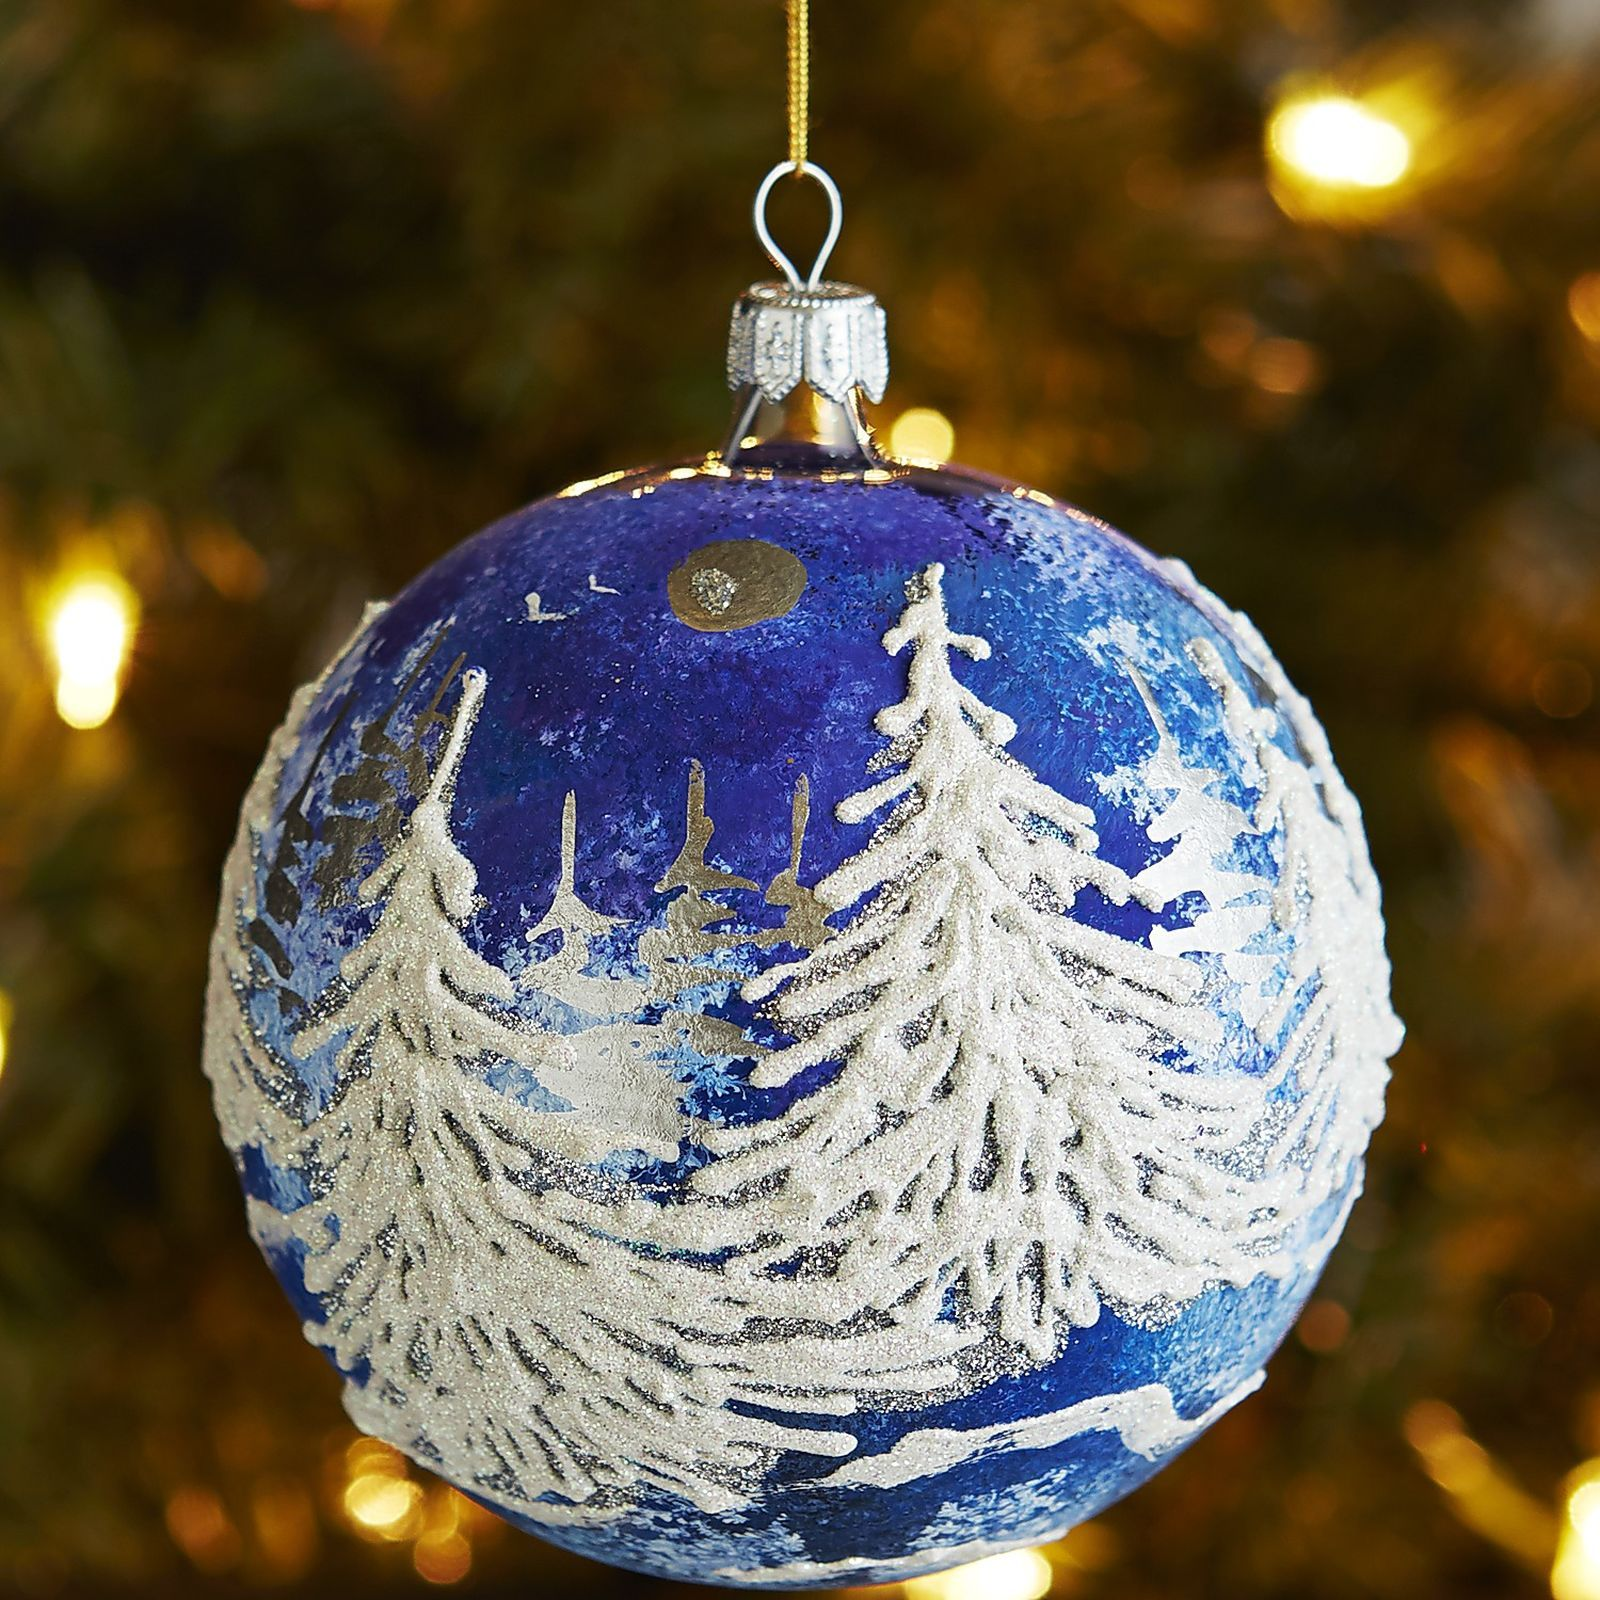 European Glass Relief Trees Ornament - Blue | Pier 1 ...